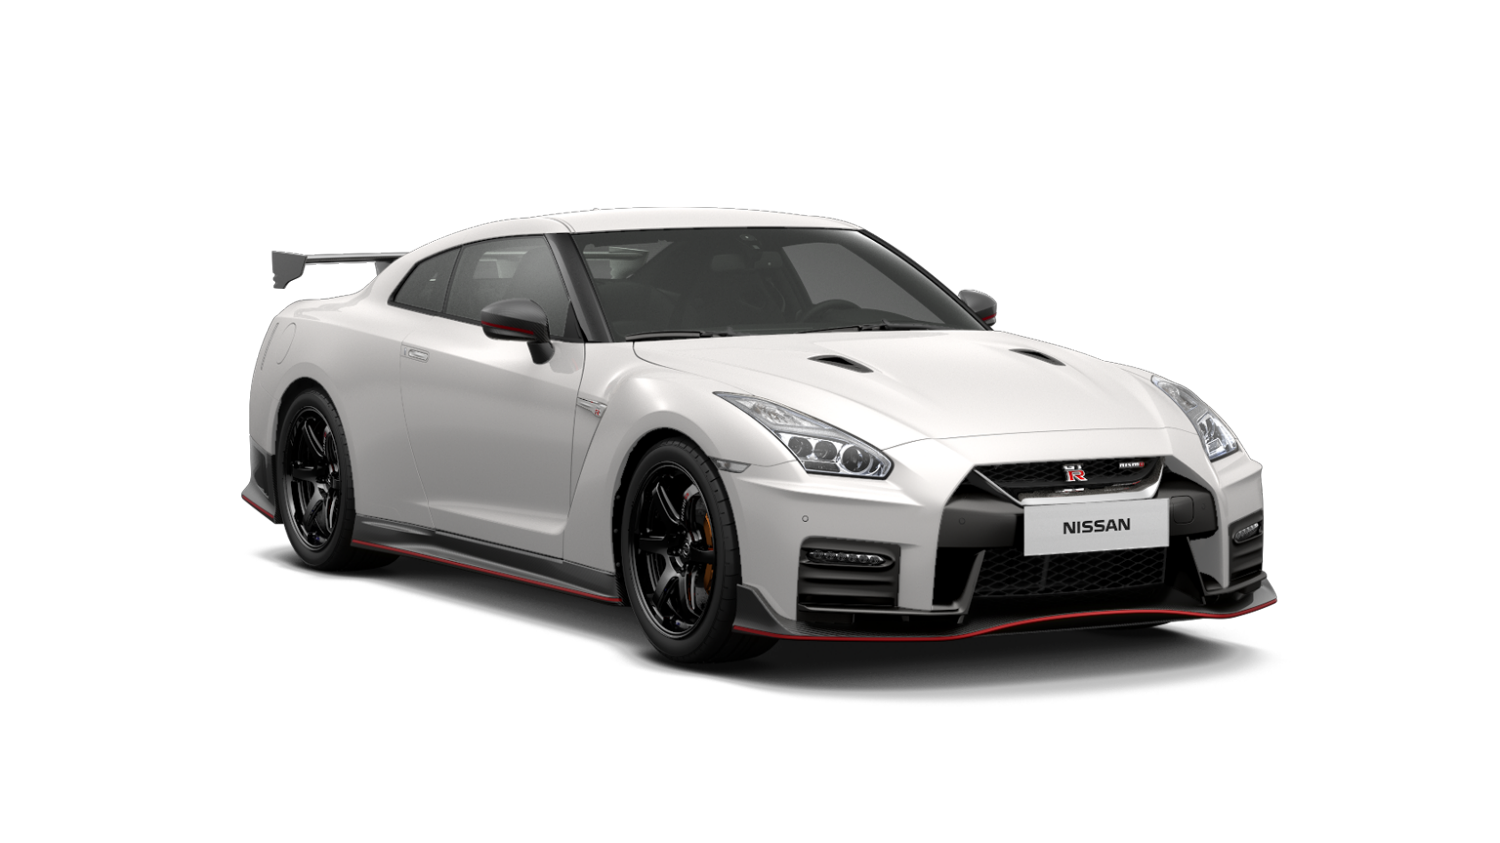 precios y versiones nissan gt r coche superdeportivo. Black Bedroom Furniture Sets. Home Design Ideas